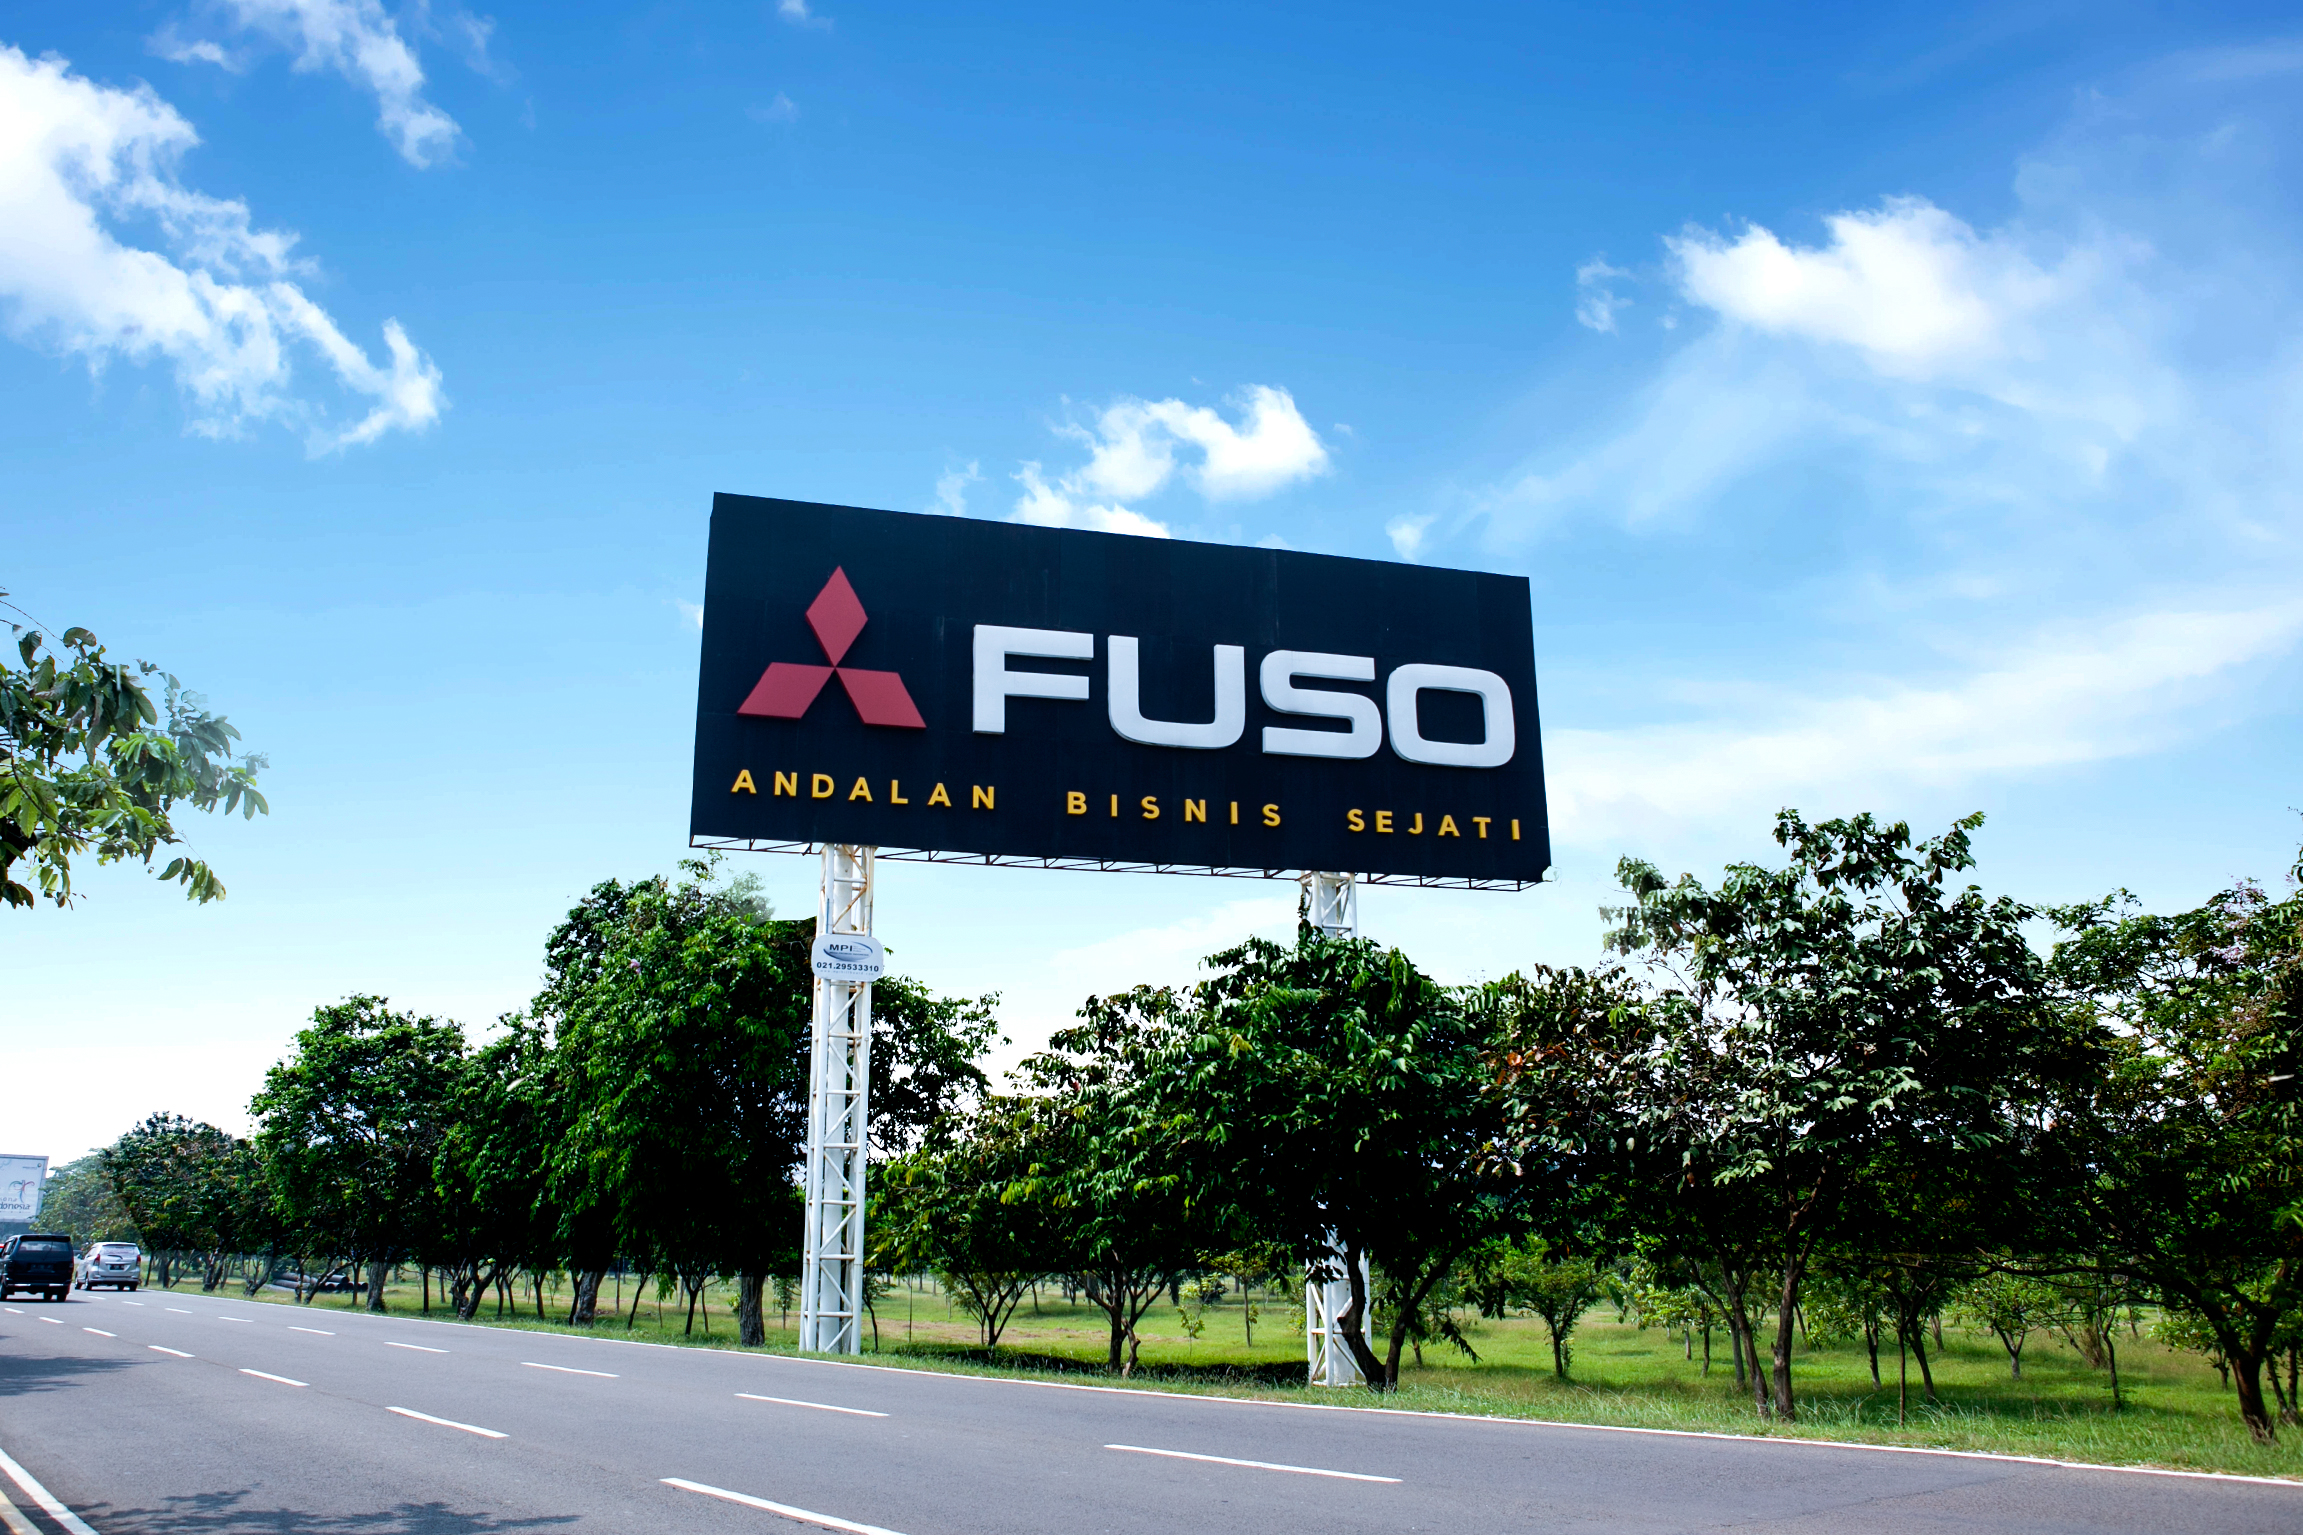 Fuso - Soekarno Hatta International Airport Jl P2